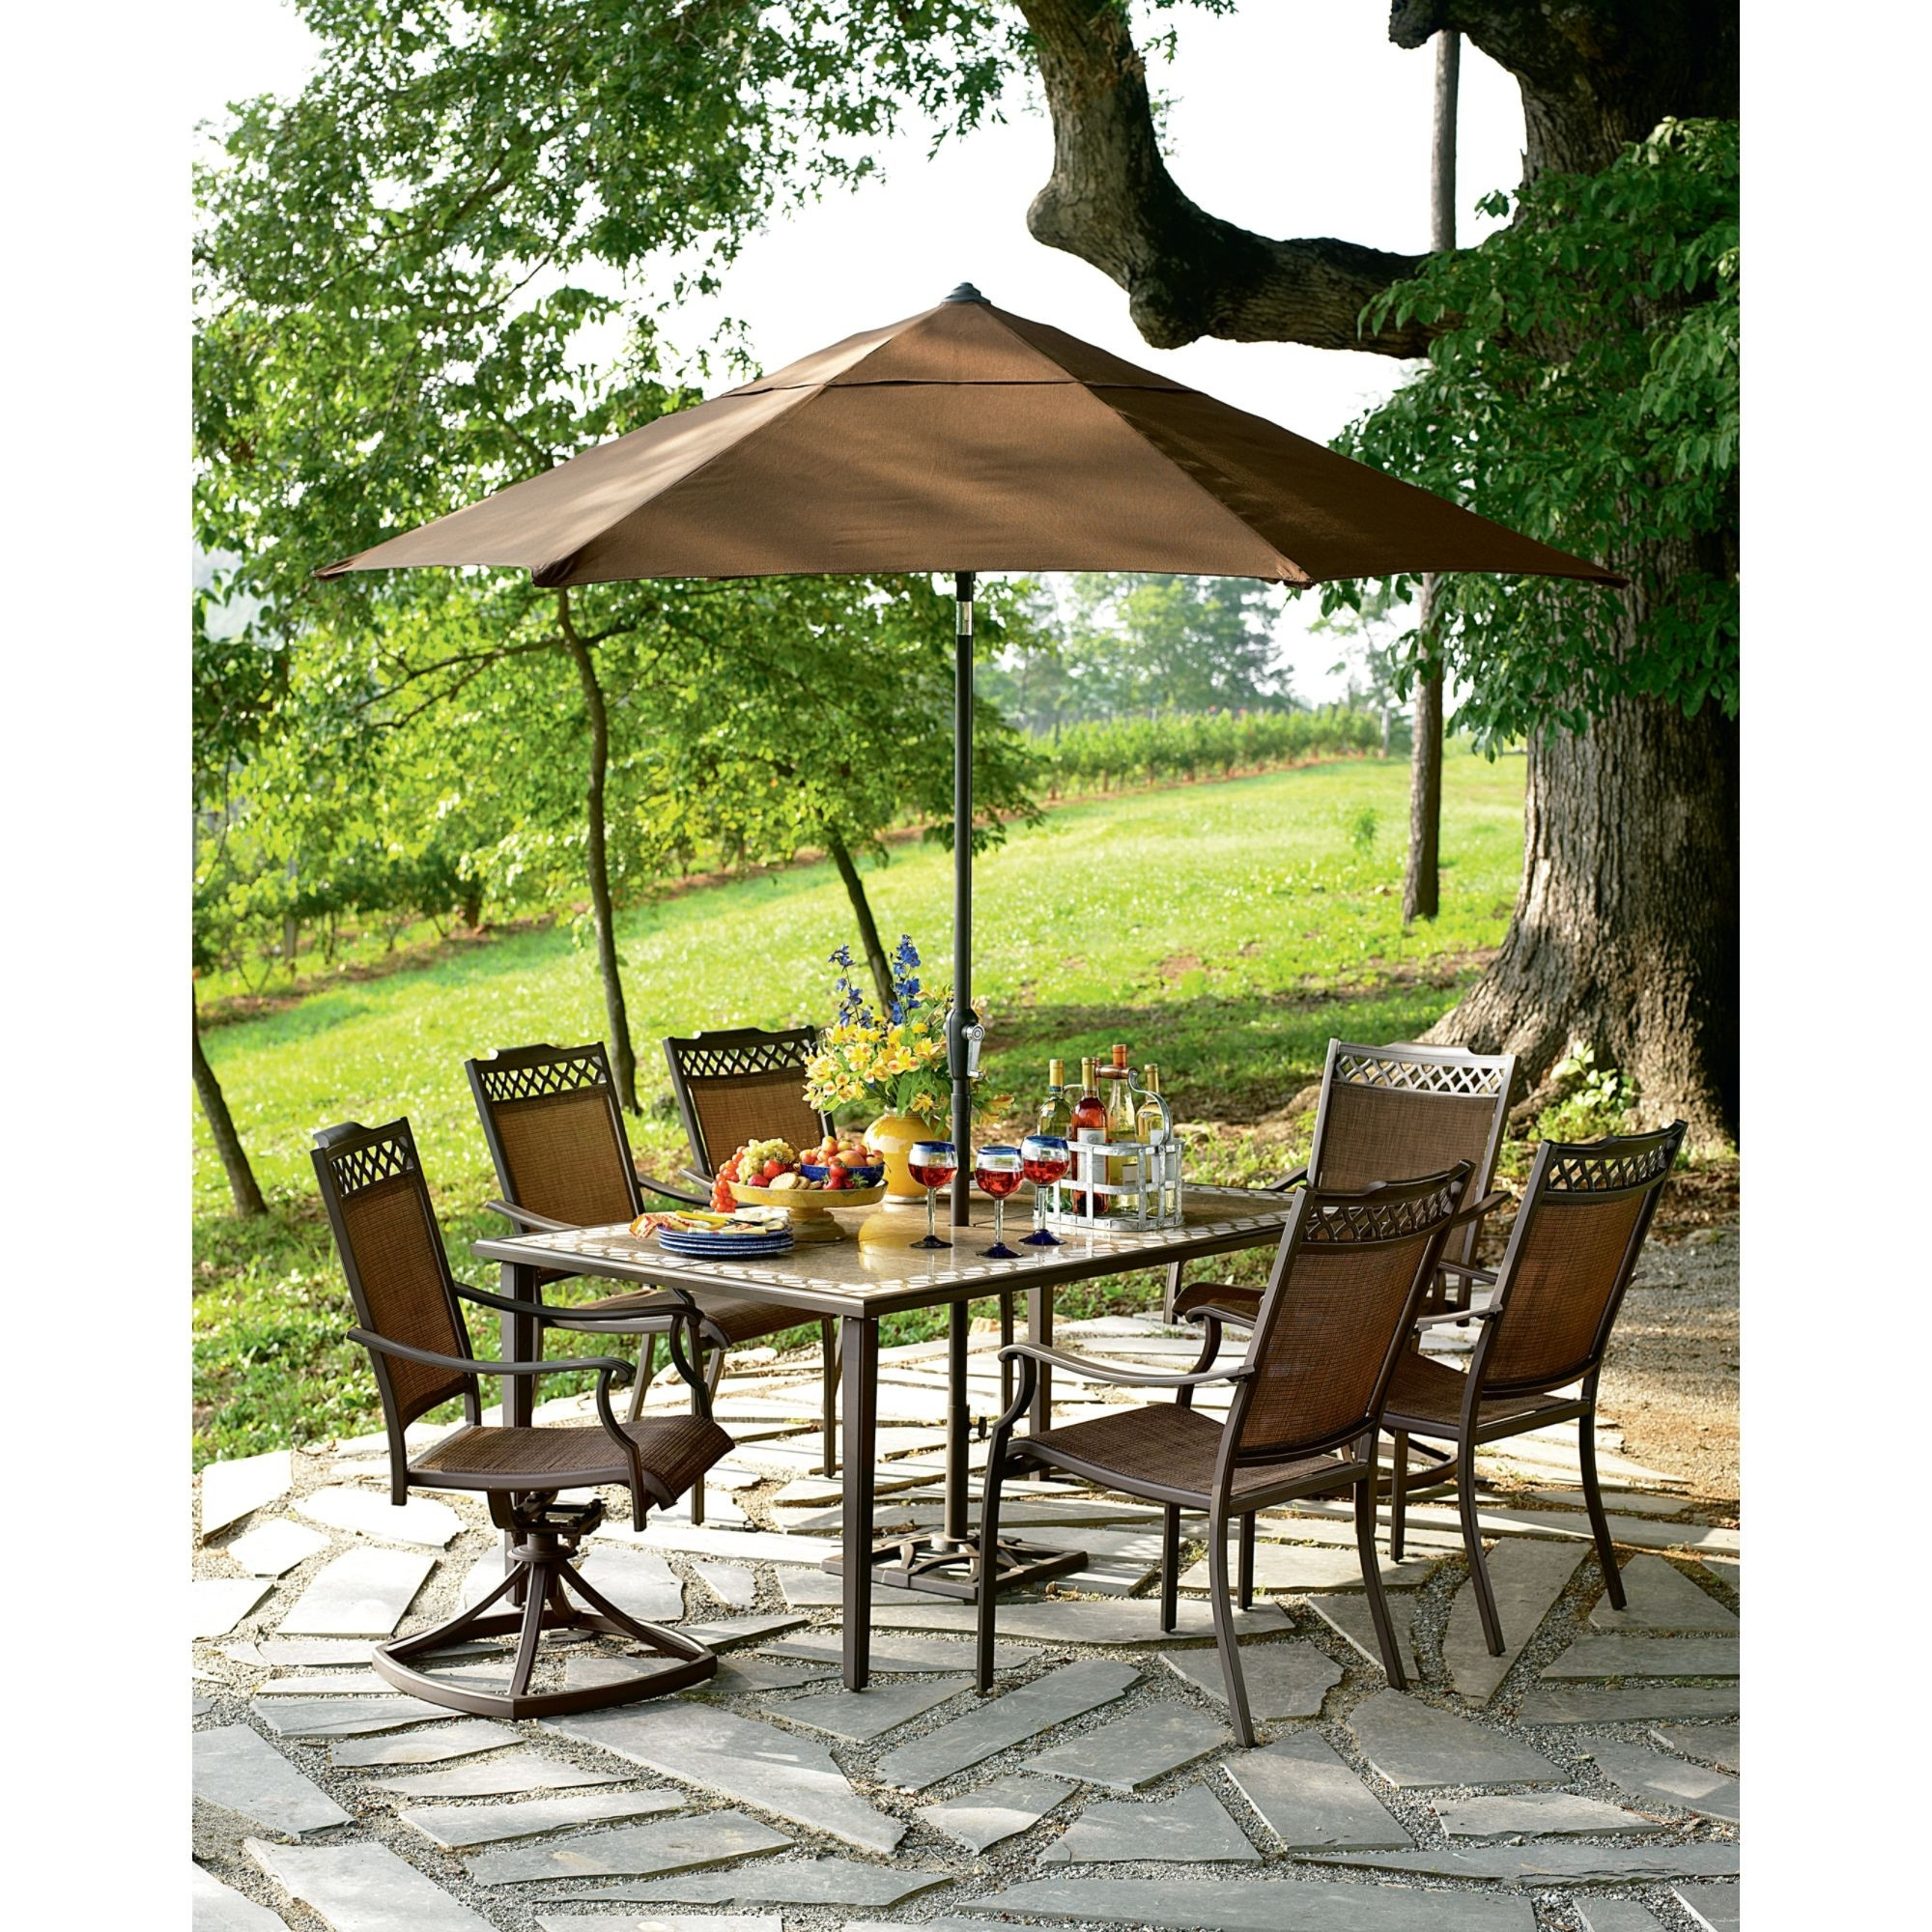 Popular Sears Patio Umbrellas Pertaining To Sears Patio Umbrella New Popular Patio Umbrella With Stand (View 19 of 20)